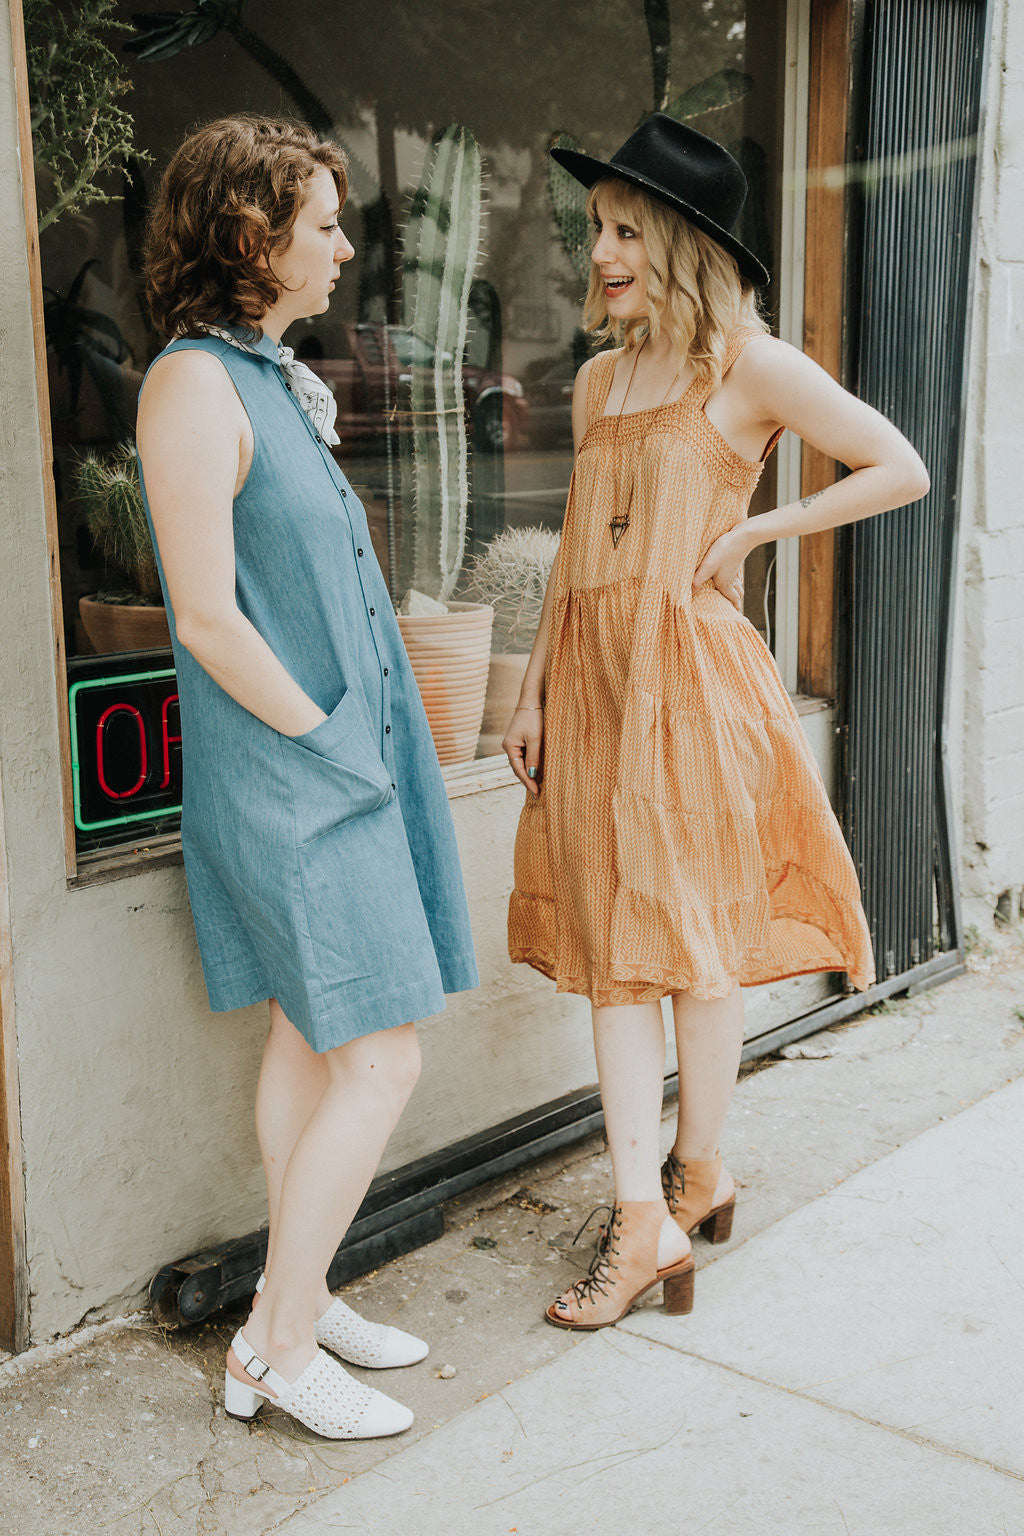 Cactus Store LA Los Angeles Gingerly Witty Natalie martin Jasmine Dress Amanda Moss Lena dress""